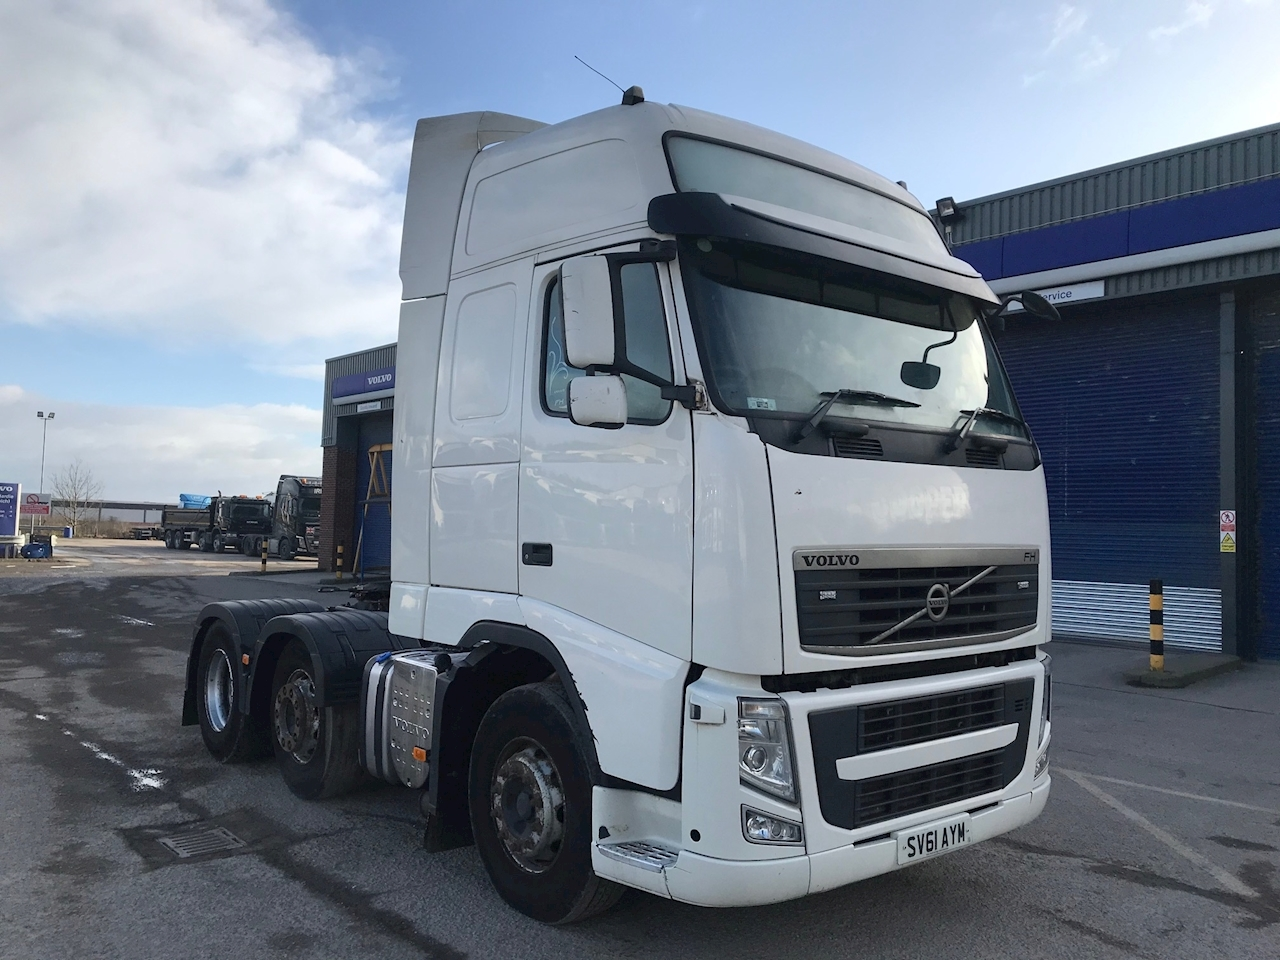 Volvo Fh Fh500 6X2t Pa L2h3 Tractor (Heavy Haulage) 12.8 Manual Diesel